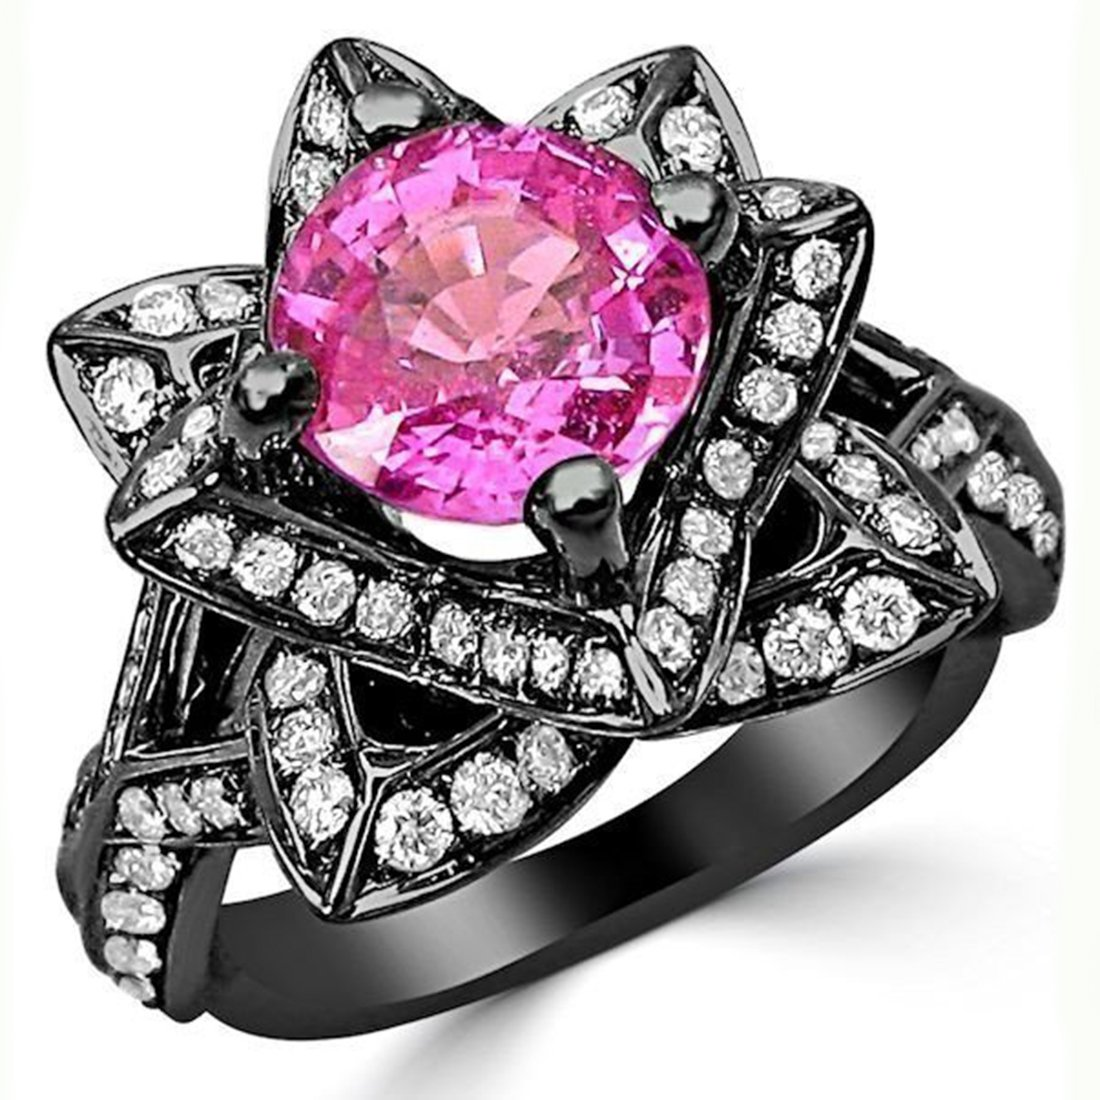 Smjewels 2.0 Ct Round Pink Sapphire & Sim.Diamond Lotus Flower Ring In 14K Black Gold Plated